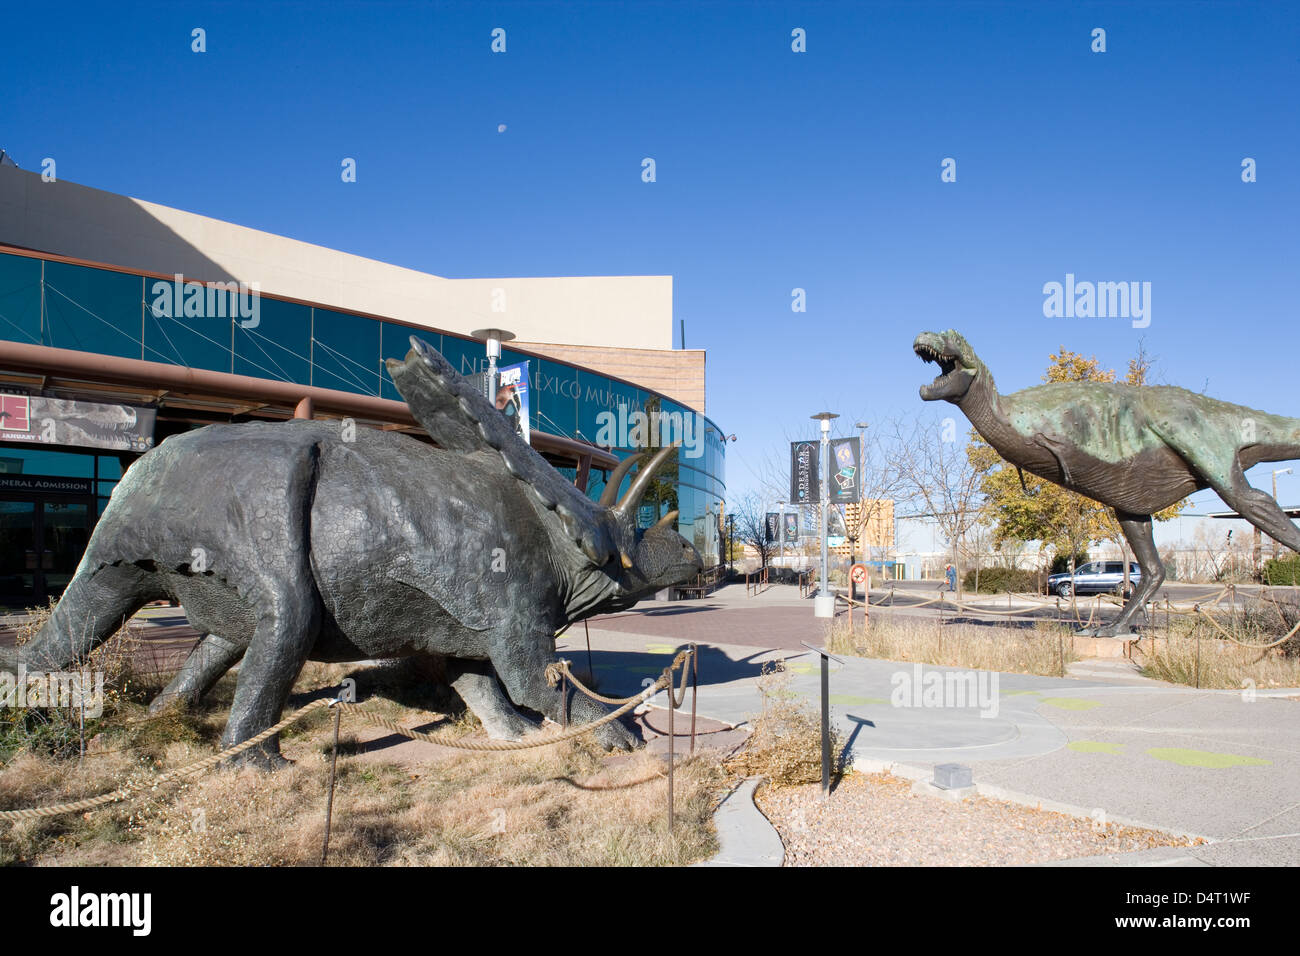 Albuquerque: New Mexico Museum of Natural History & Science - Stock Image